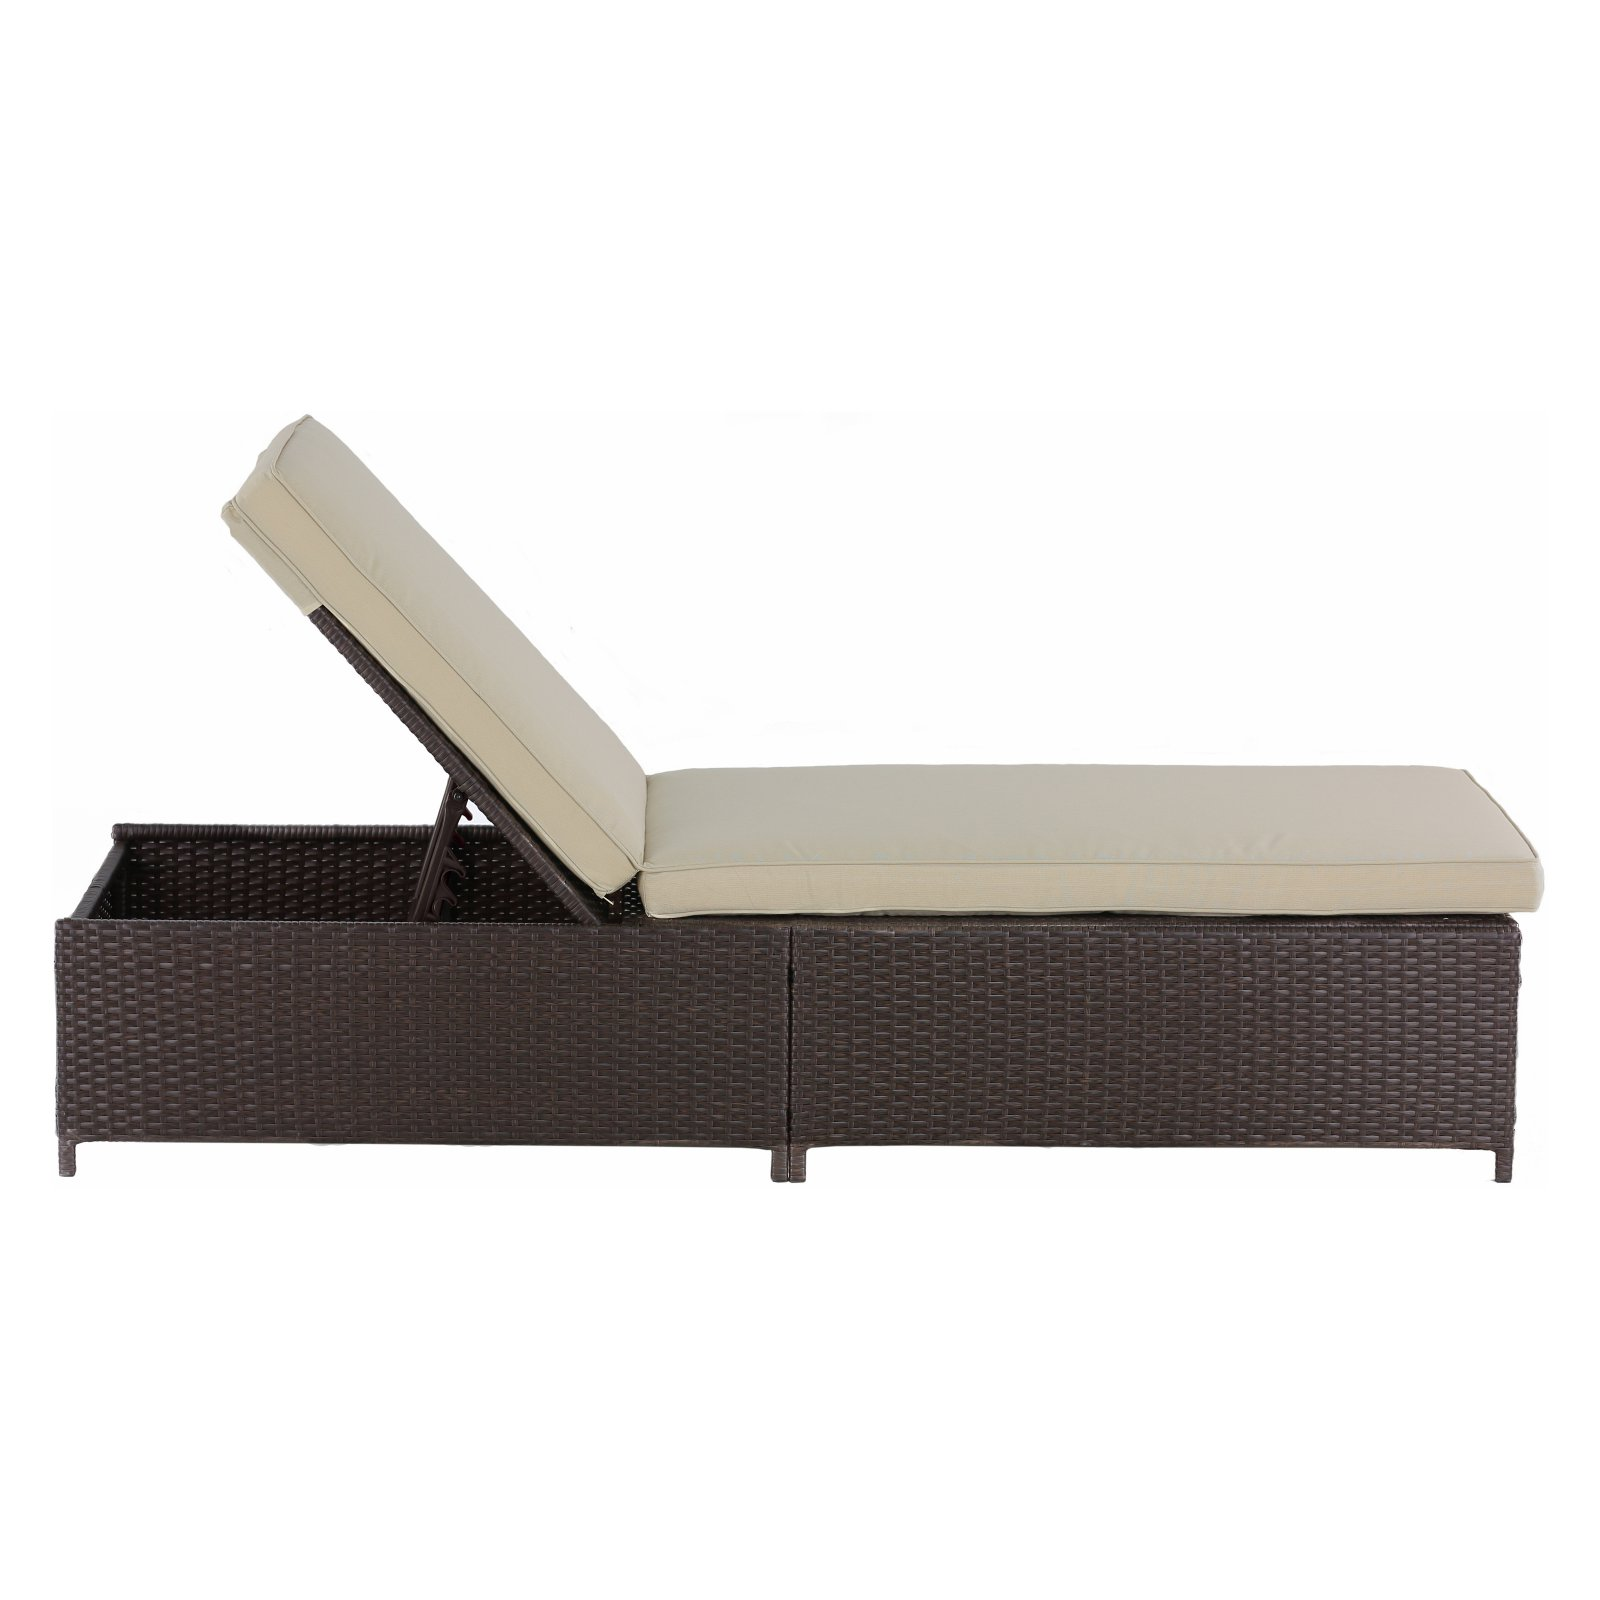 Merveilleux Serta Laguna Outdoor Storage Chaise Lounge   Brown Wicker